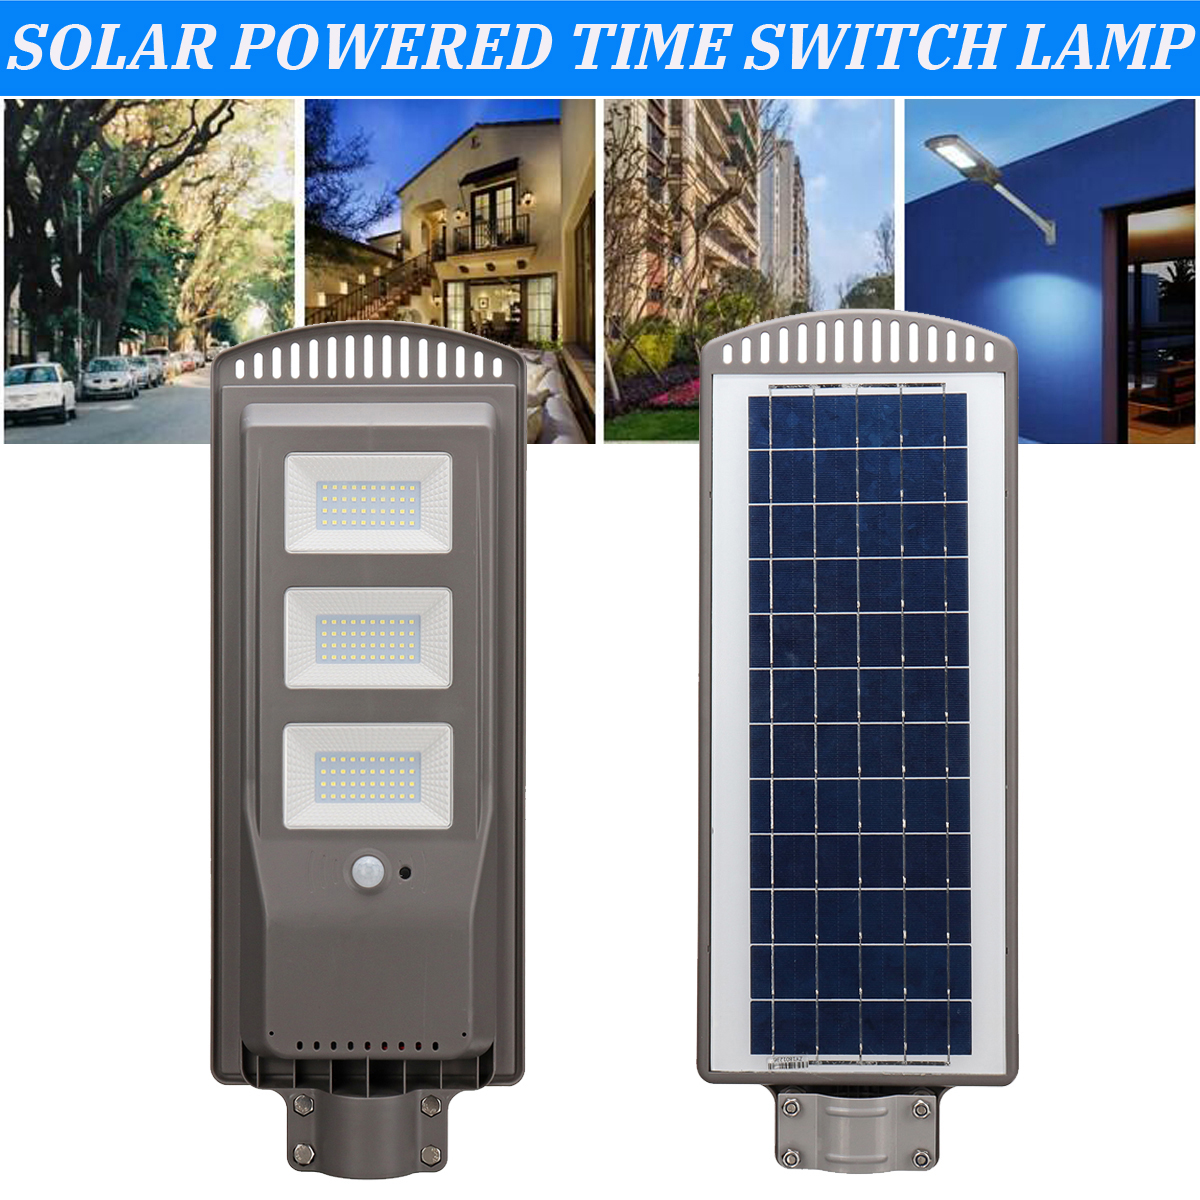 Solar Powered Panel 60W LED Solar Street Light All-in-1 Time Switch Waterproof IP67 Wall Path Lighting Lamp for Outdoor Garden high lumen 60w all in one solar street light south africa for commerical lighting residential lighting